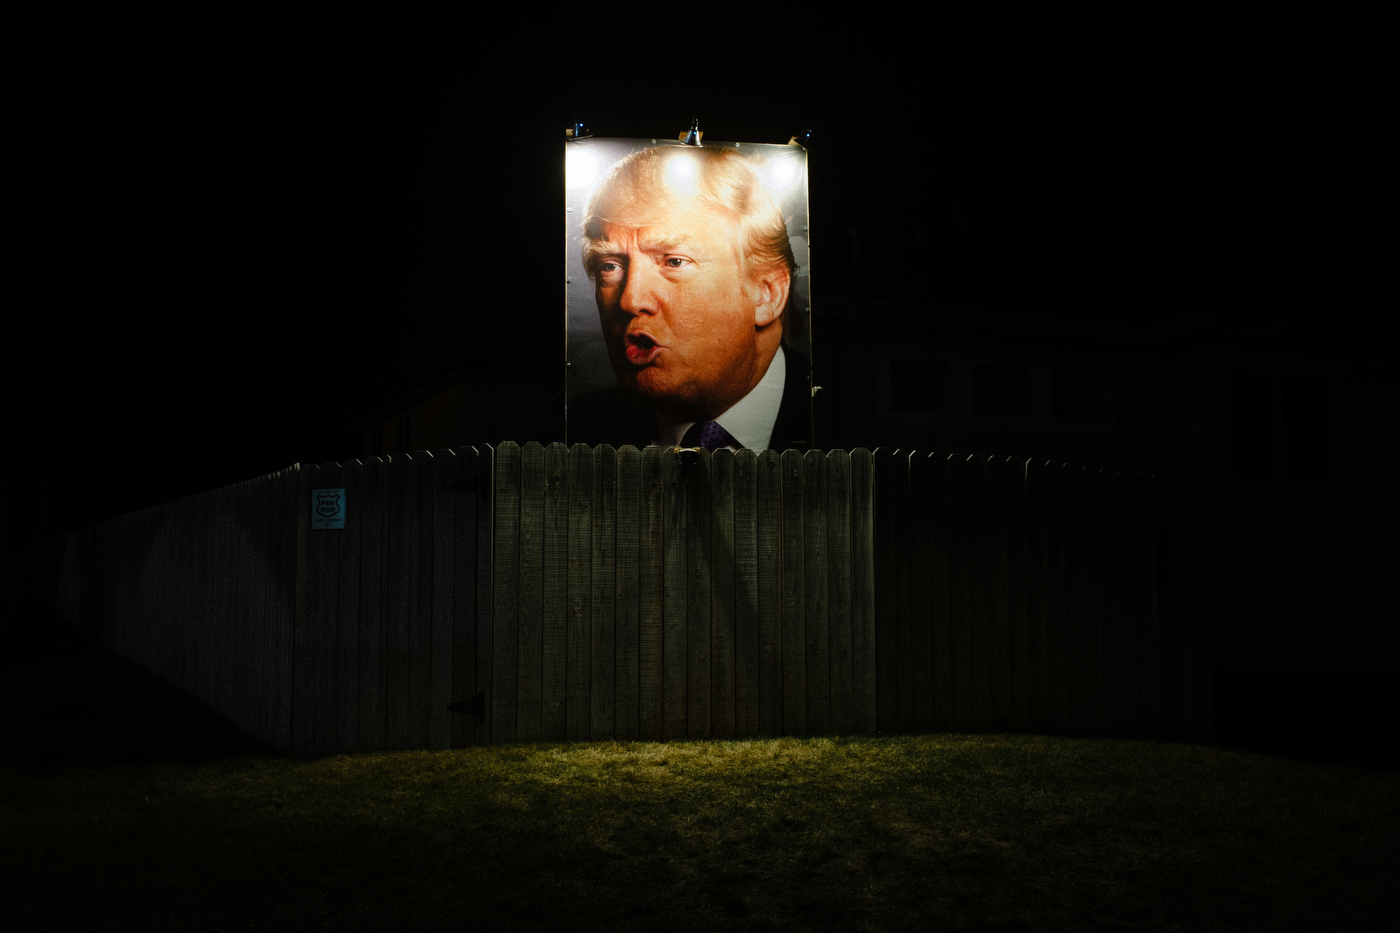 A photo of Republican U.S. presidential candidate Donald Trump stands over the fence at the home of George Davey, a formerly registered independent turned Republican Trump supporter. Davey puts up signage every election at his home off Jordan Creek Parkway and Pommel Place in Des Moines, Iowa.